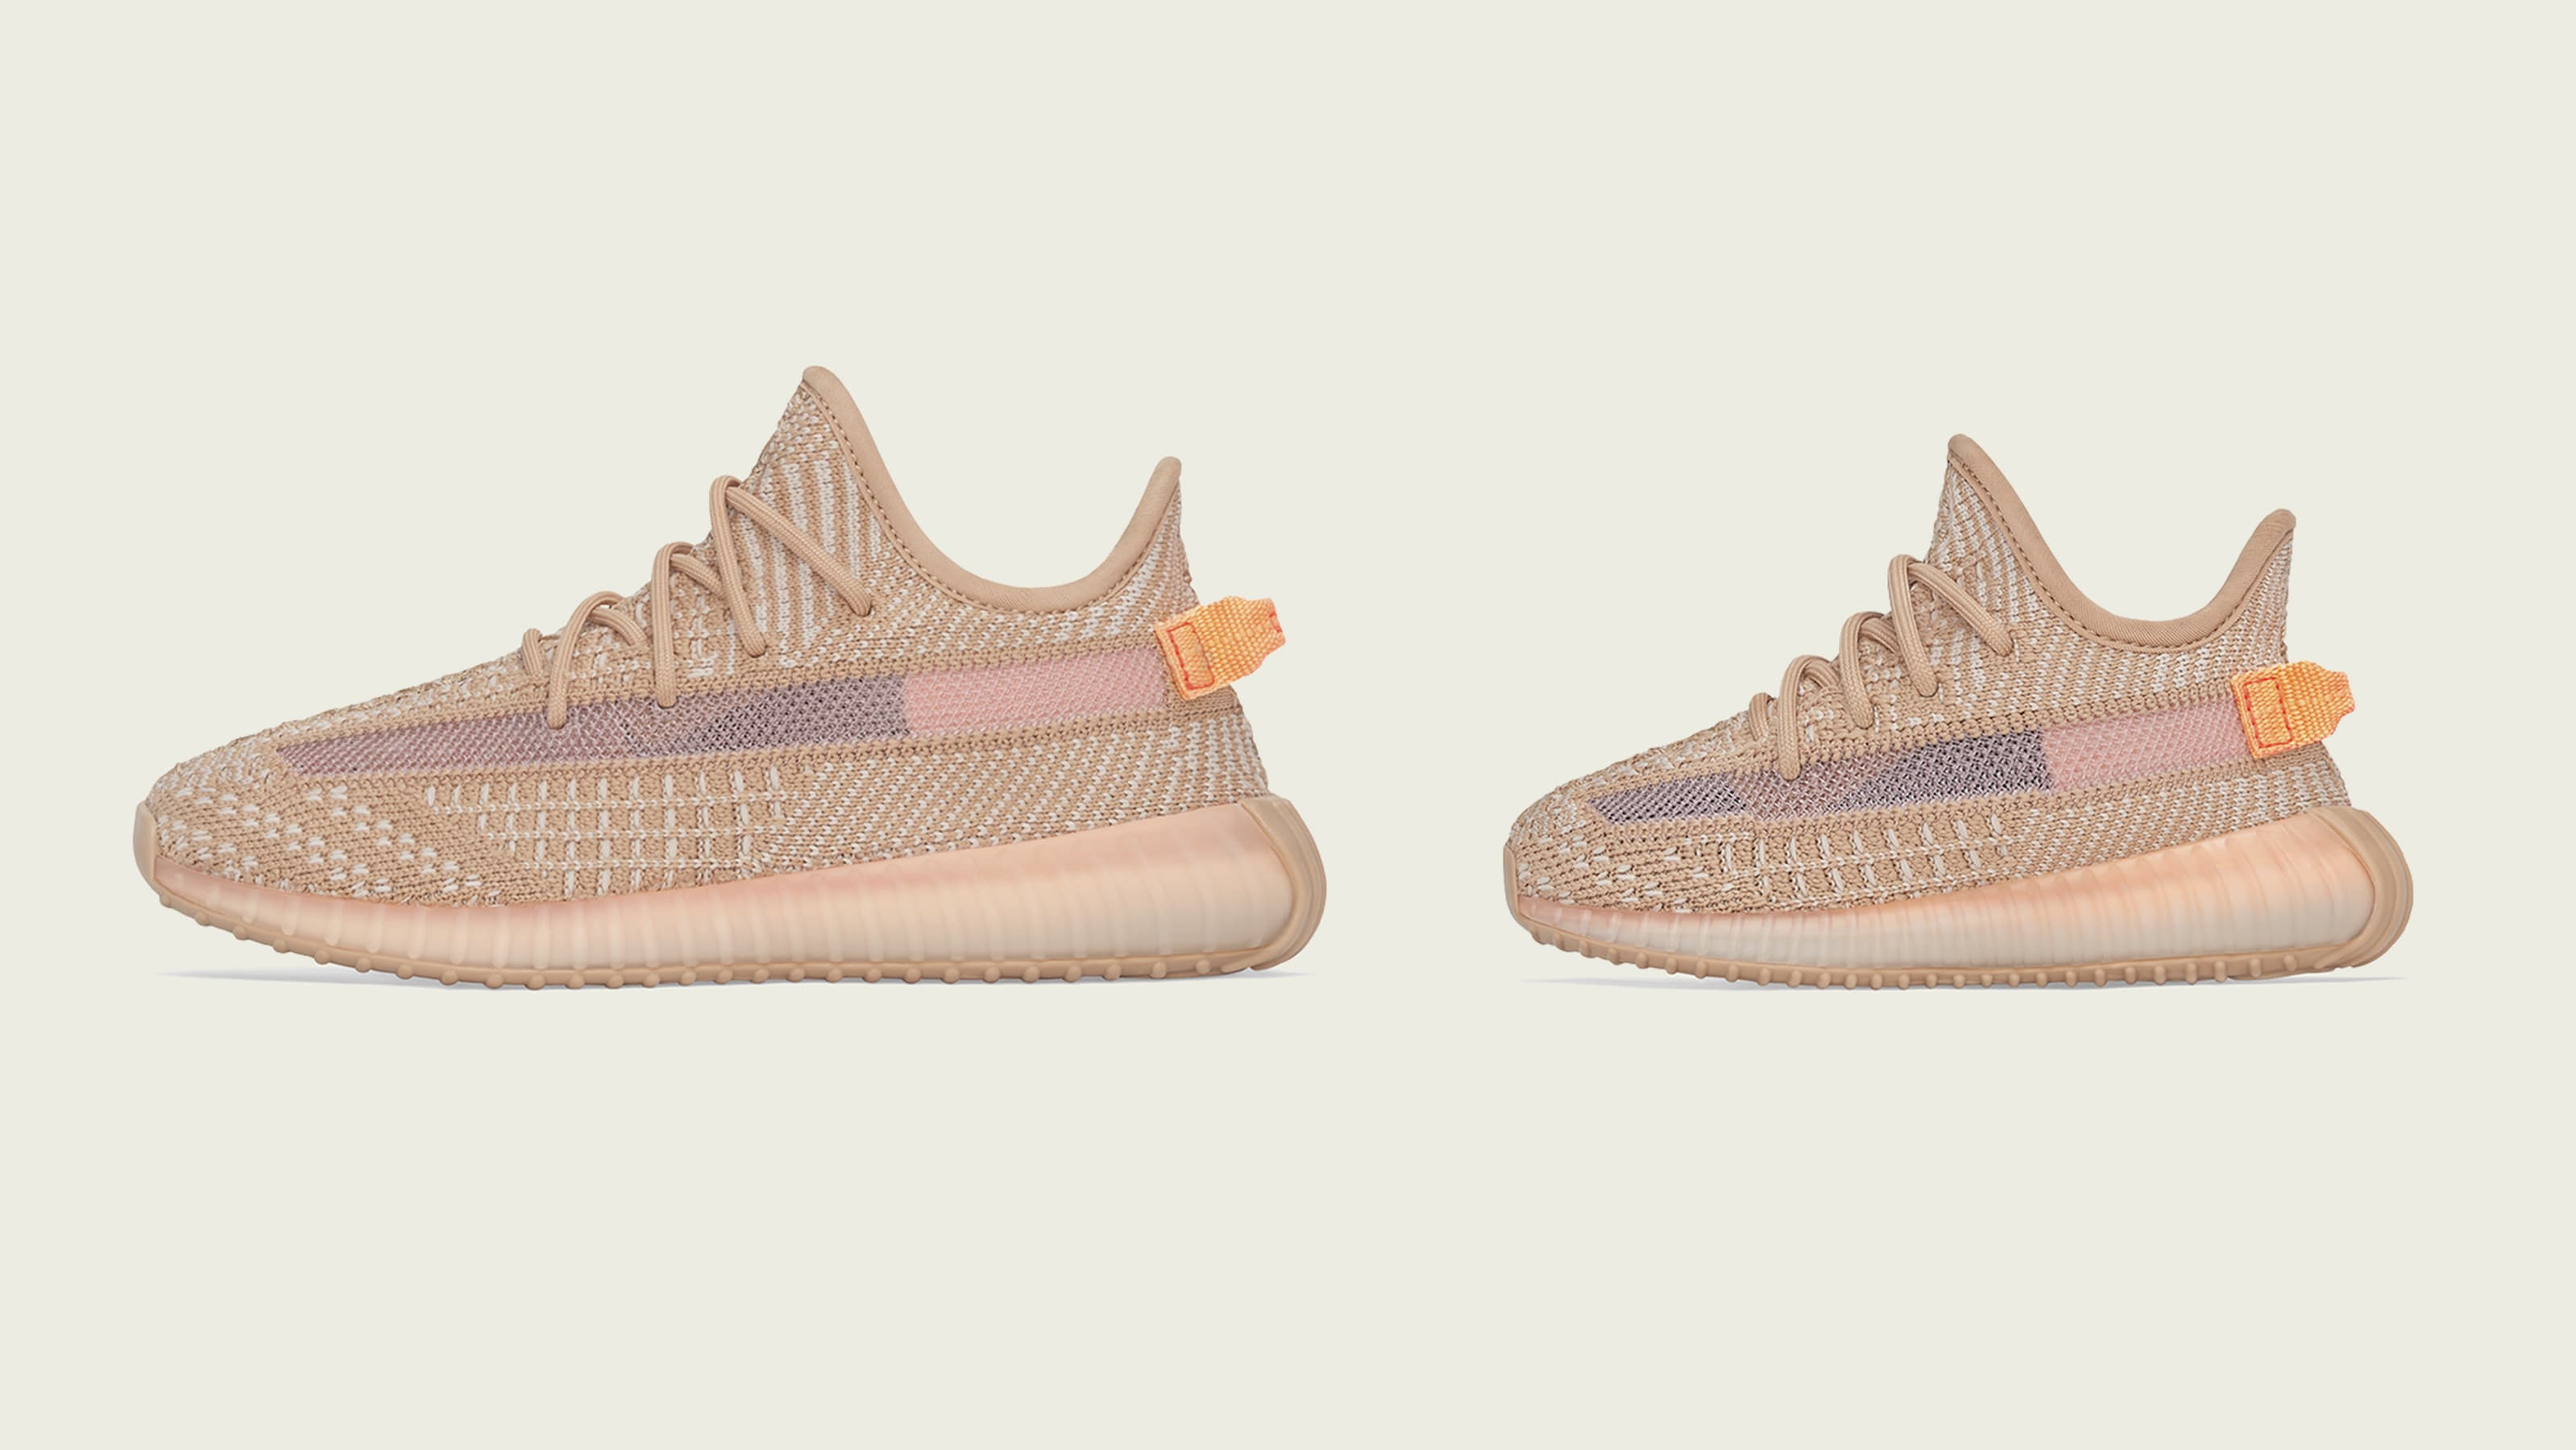 new product 5a7f6 6aee3 Adidas Yeezy Boost 350 V2  Clay  Kids (Lateral)